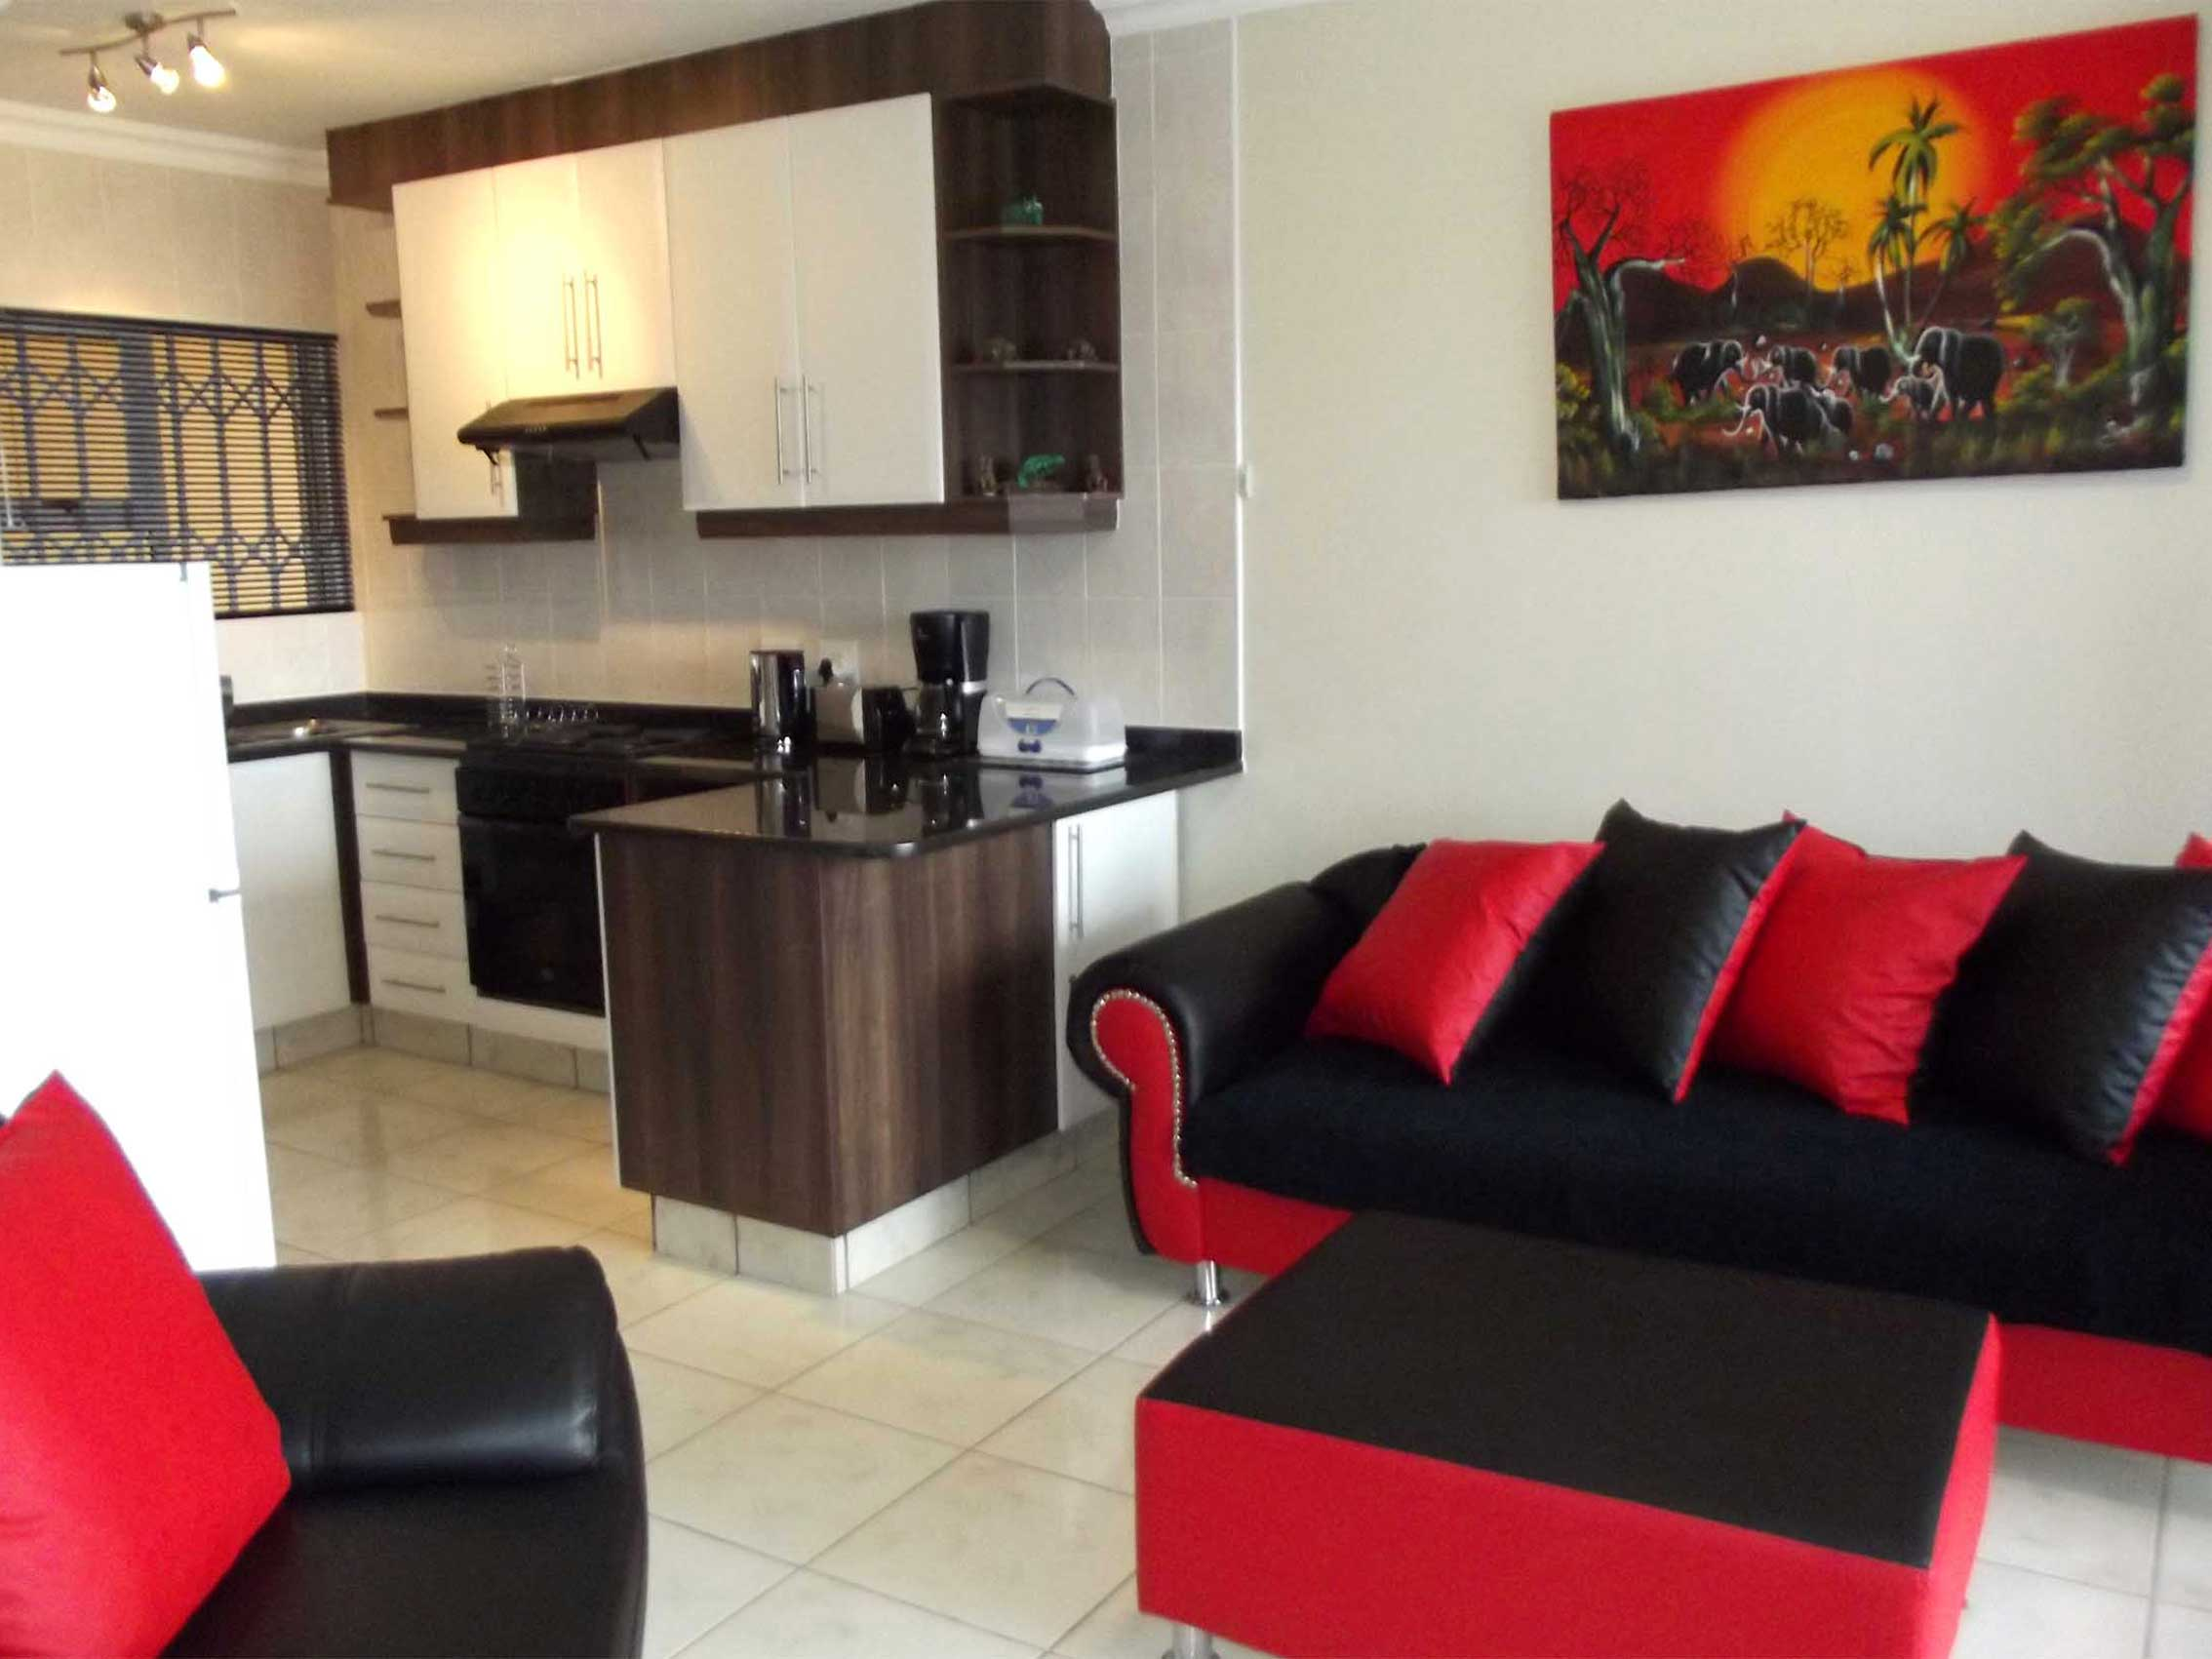 Queens View 2 - Manaba Beach - Self Catering - Accommodation - Sleeps 5